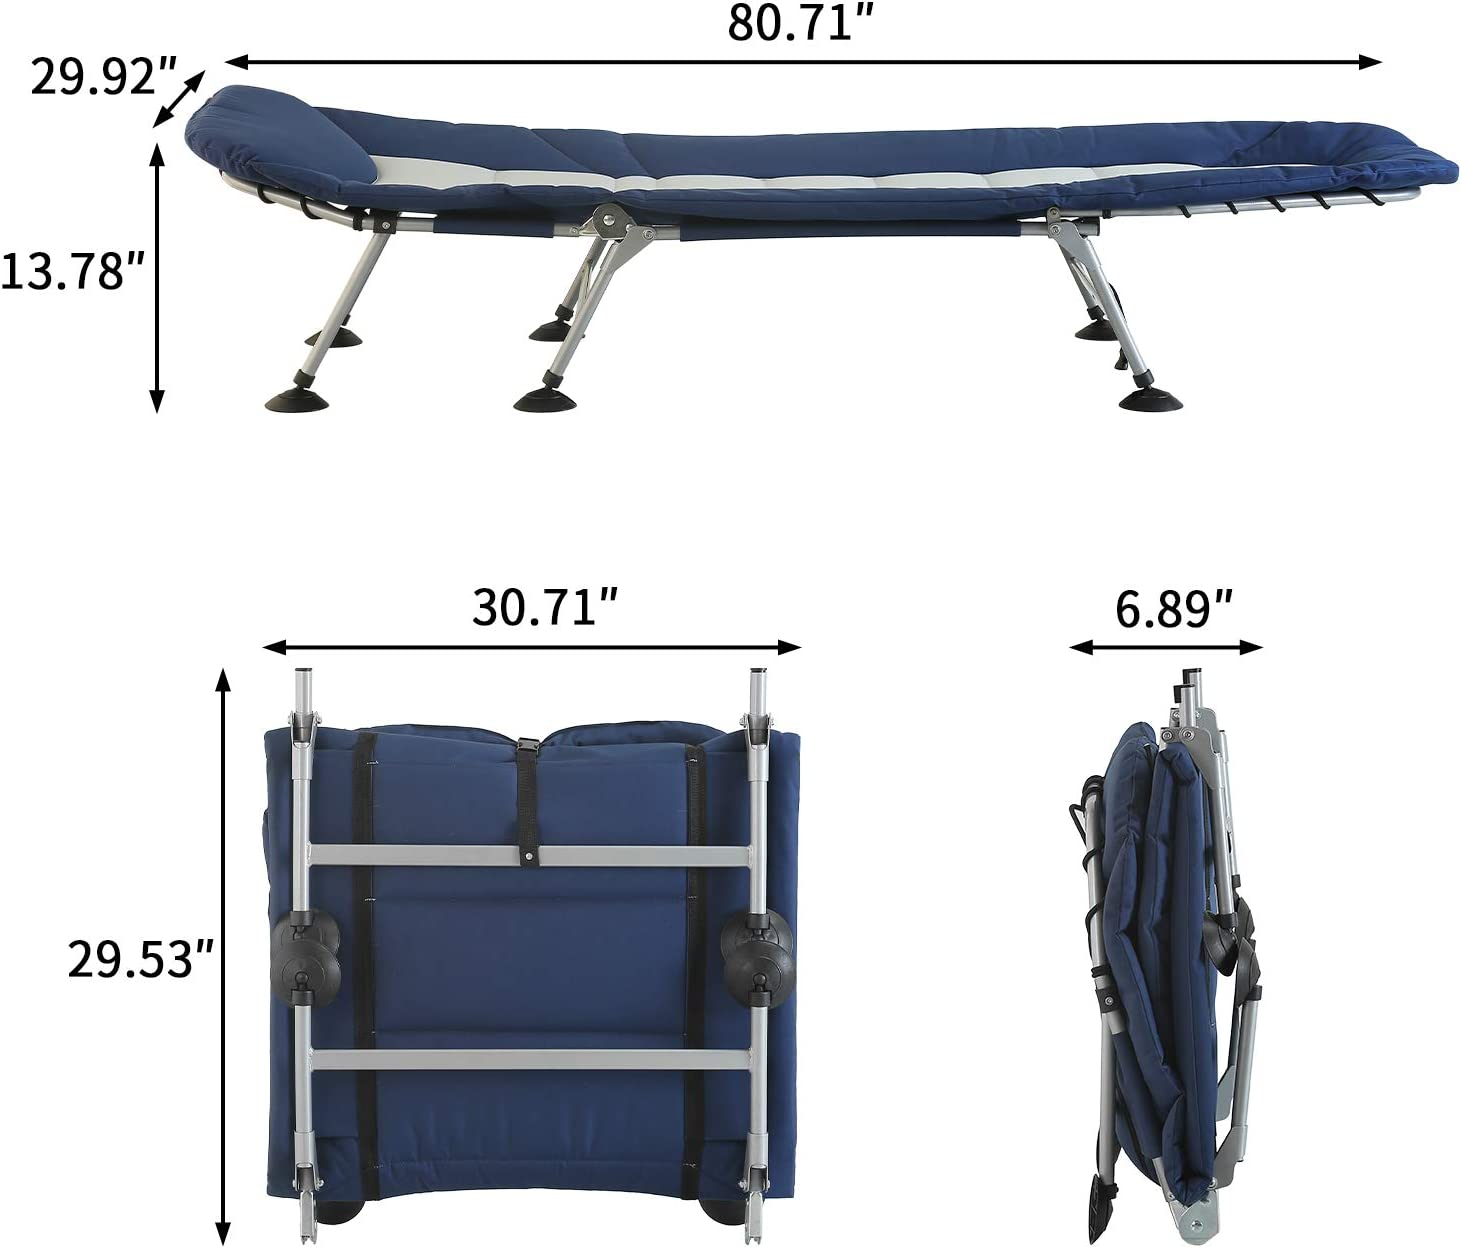 Indoor/&Outdoor Recliner for Travel Blue and Grey AbocoFur Folding Portable Camping Cot for Adults 500lbs Office Utility Adjustable Sleeping Bed with Strong Steel Frame and 600D Oxford Fabric